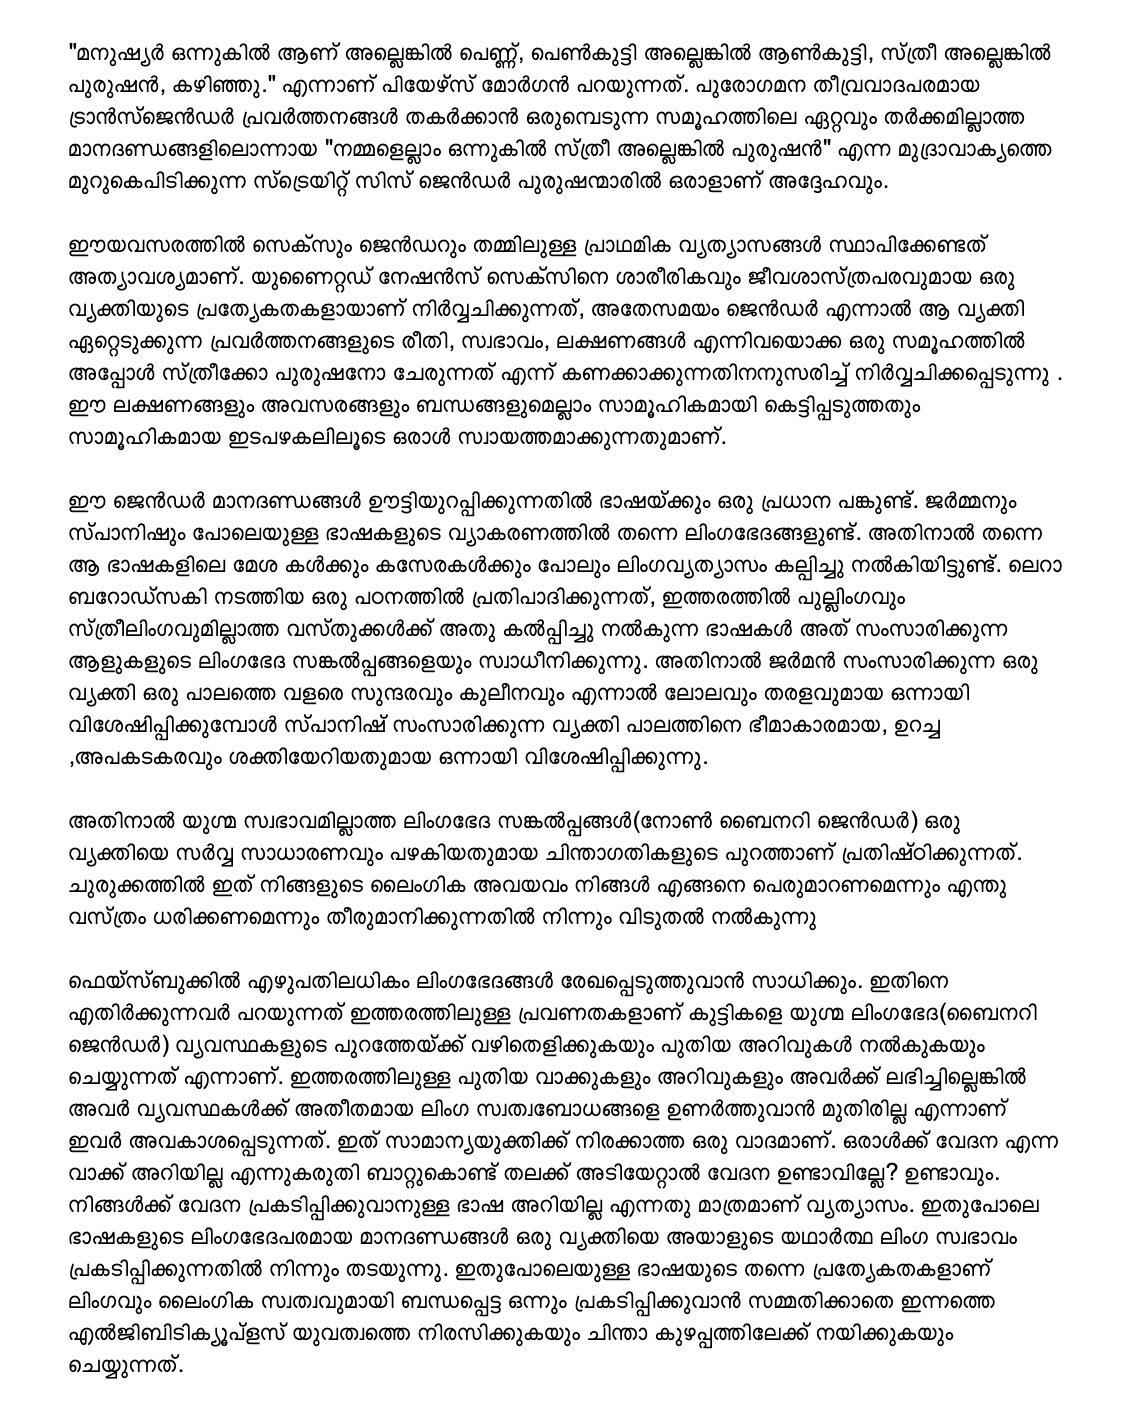 Does Language Have Gender? [In Malayalam]